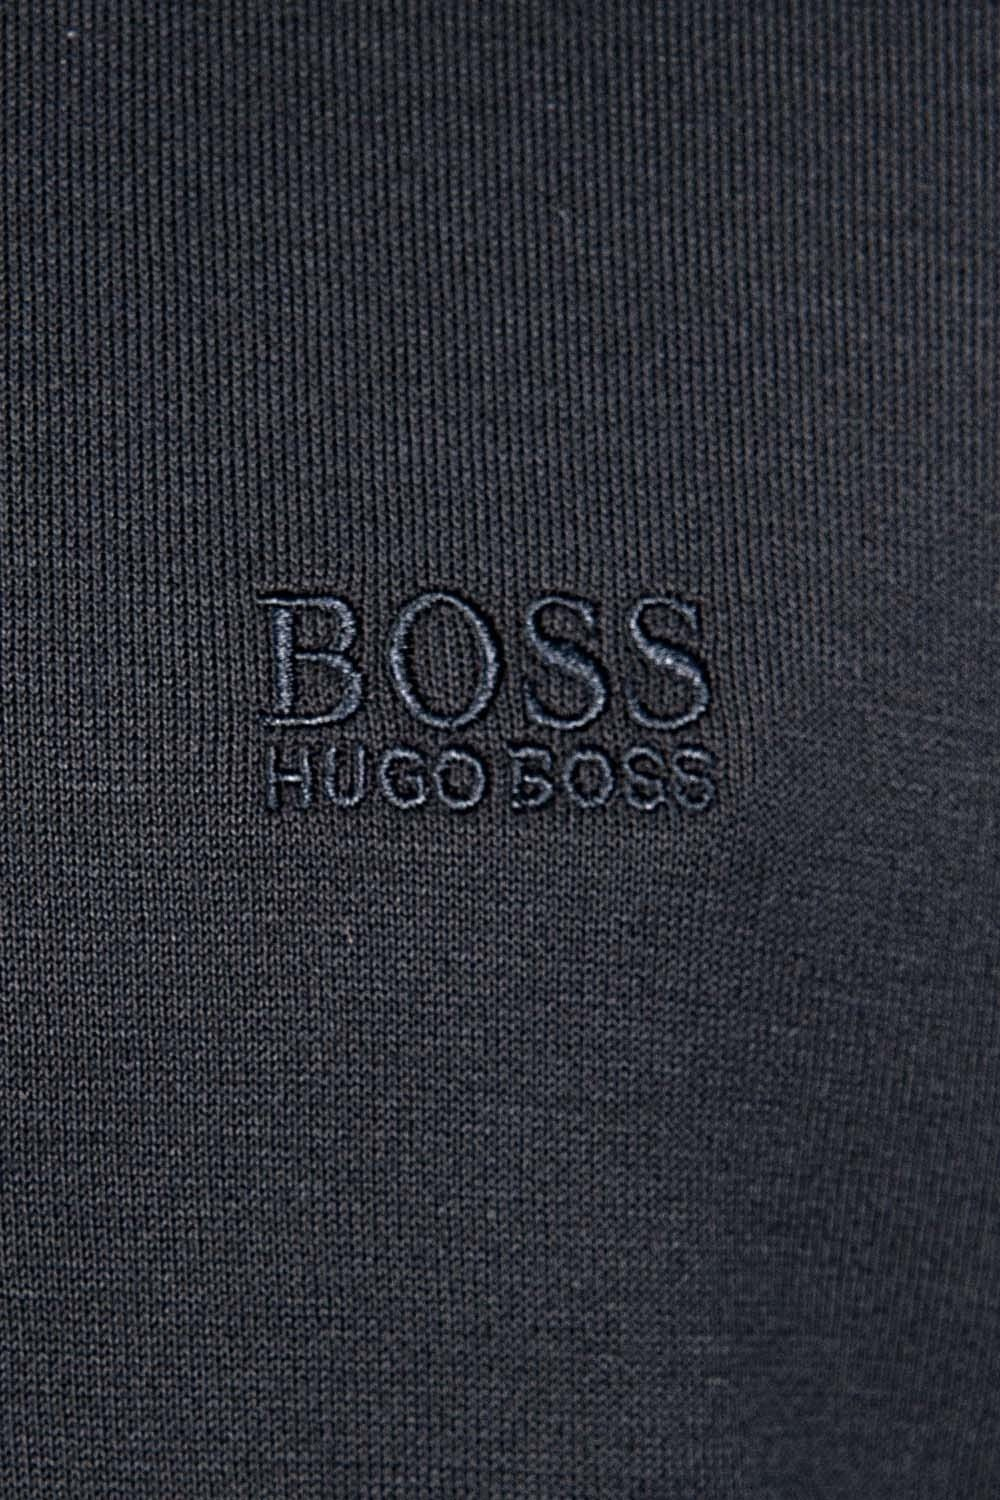 hugo boss green sweatshirt in grey black white and navy. Black Bedroom Furniture Sets. Home Design Ideas